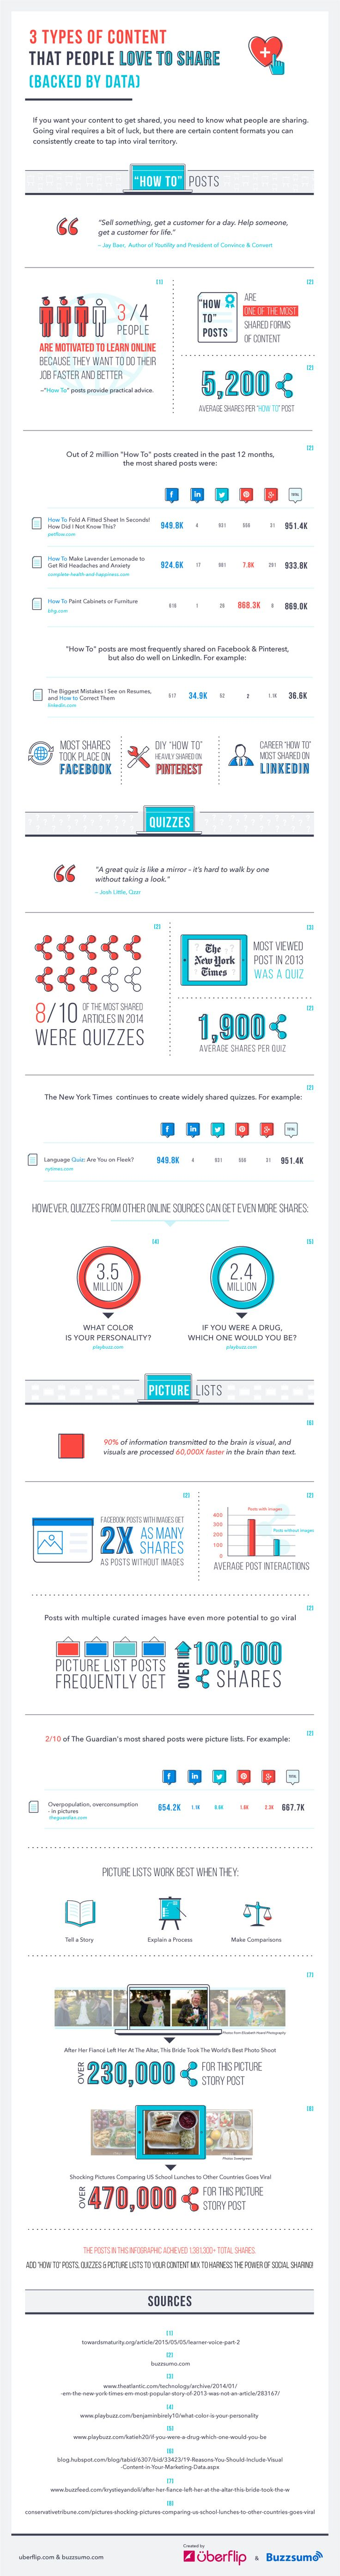 225 best social media marketing images on pinterest inbound 3 types of content that people love to share on social media infographic fandeluxe Image collections